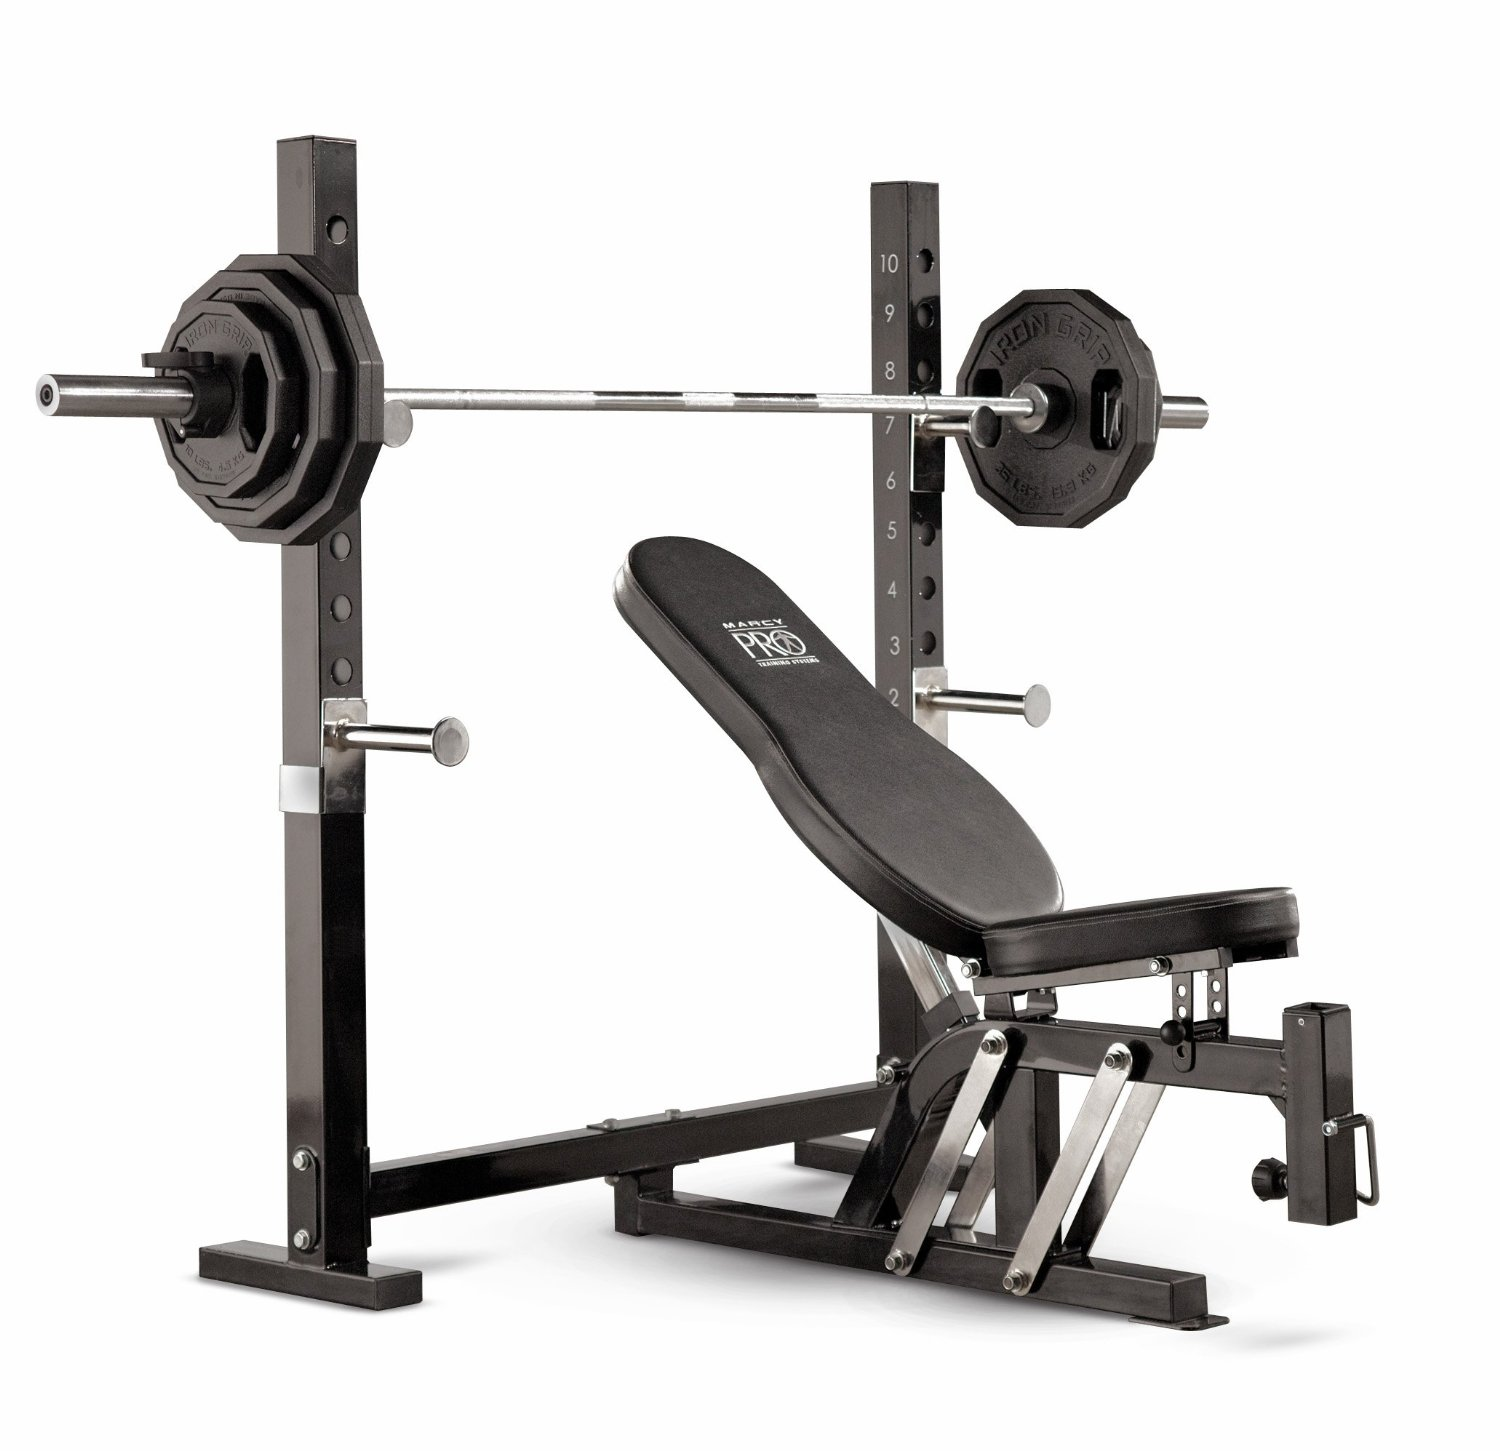 Free Weights On Bench: Marcy Pro Olympic Bench Review